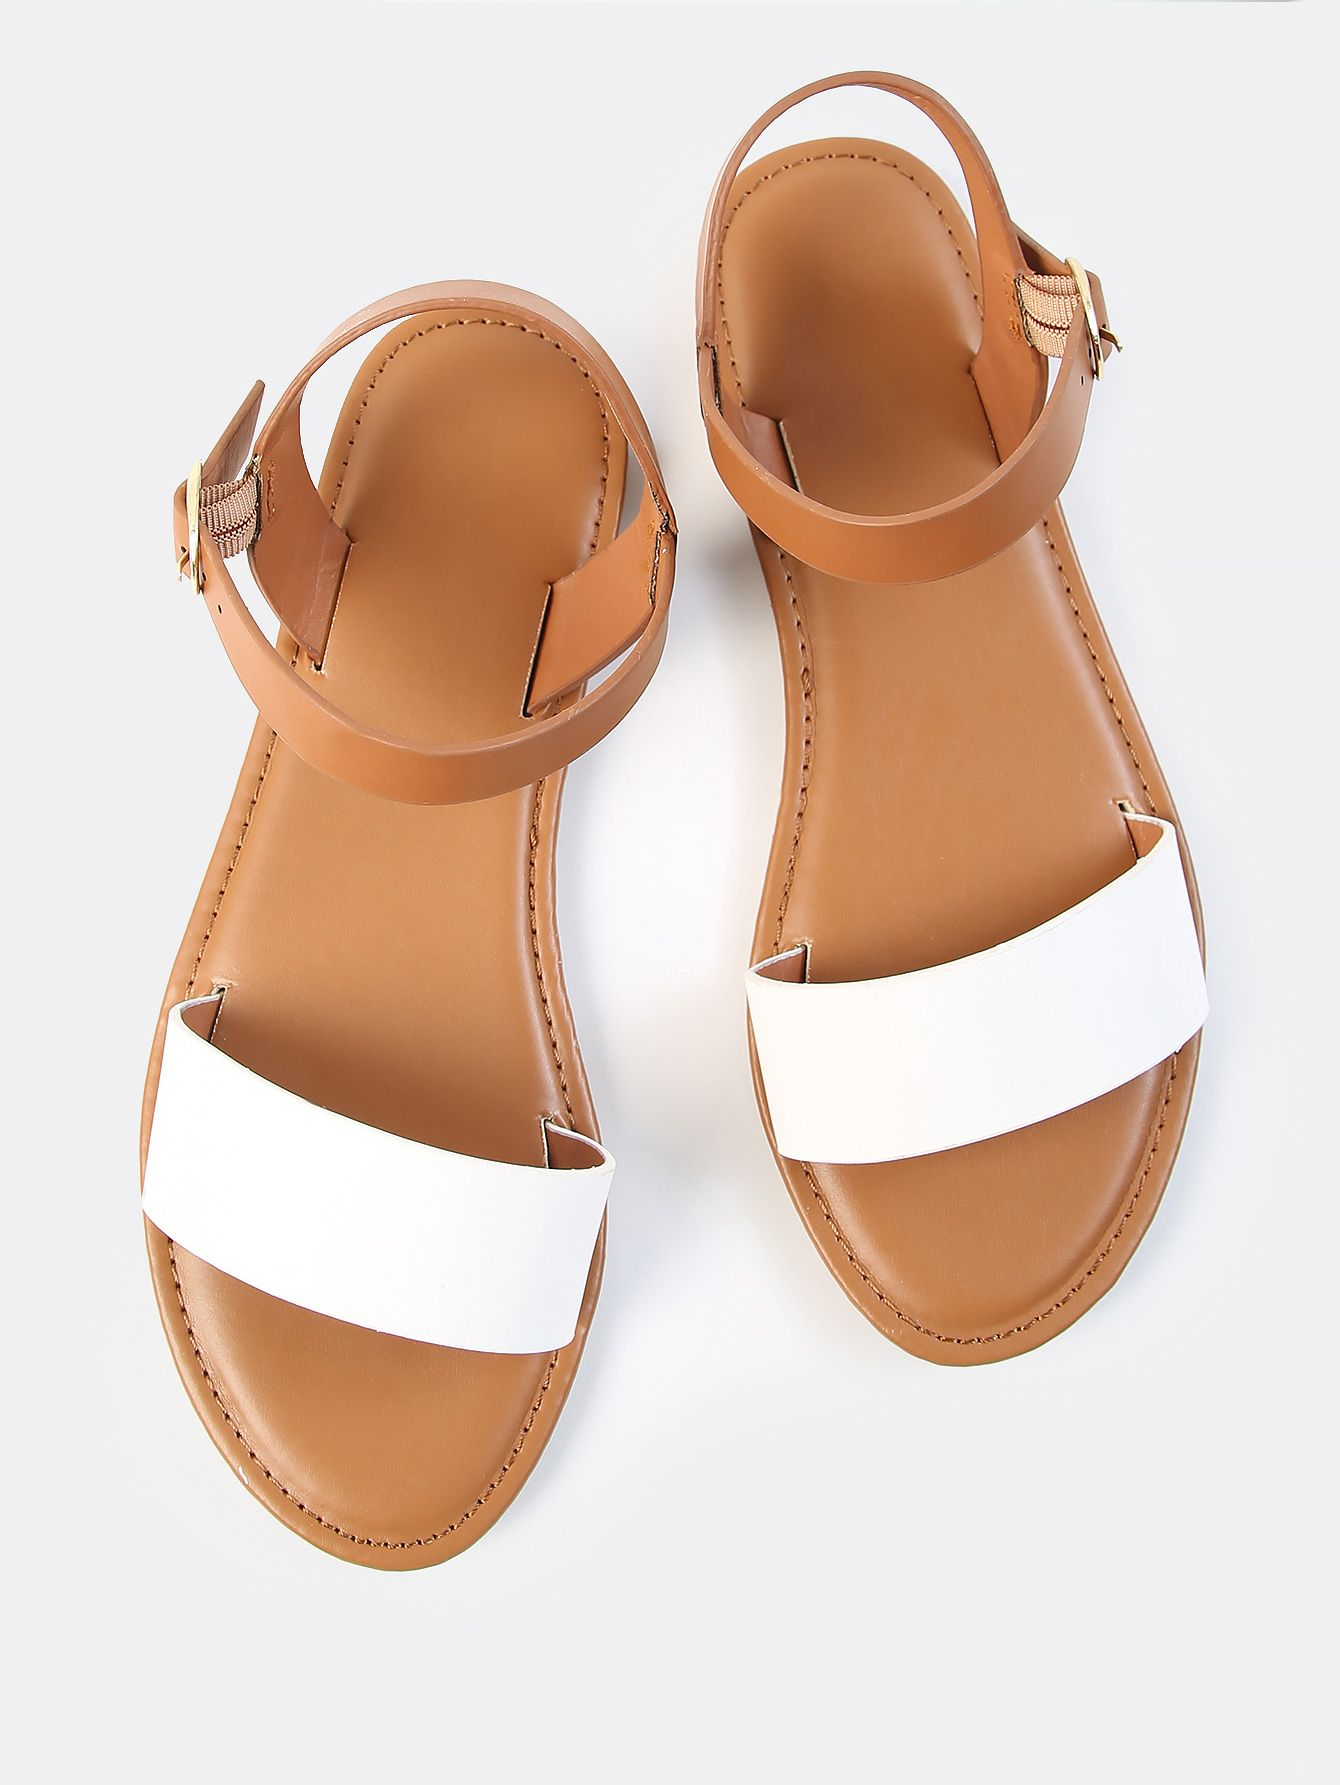 00a8ba6d88ee Shop Two Tone PU Open Toe Sandals online. SheIn offers Two Tone PU Open Toe  Sandals   more to fit your fashionable needs.